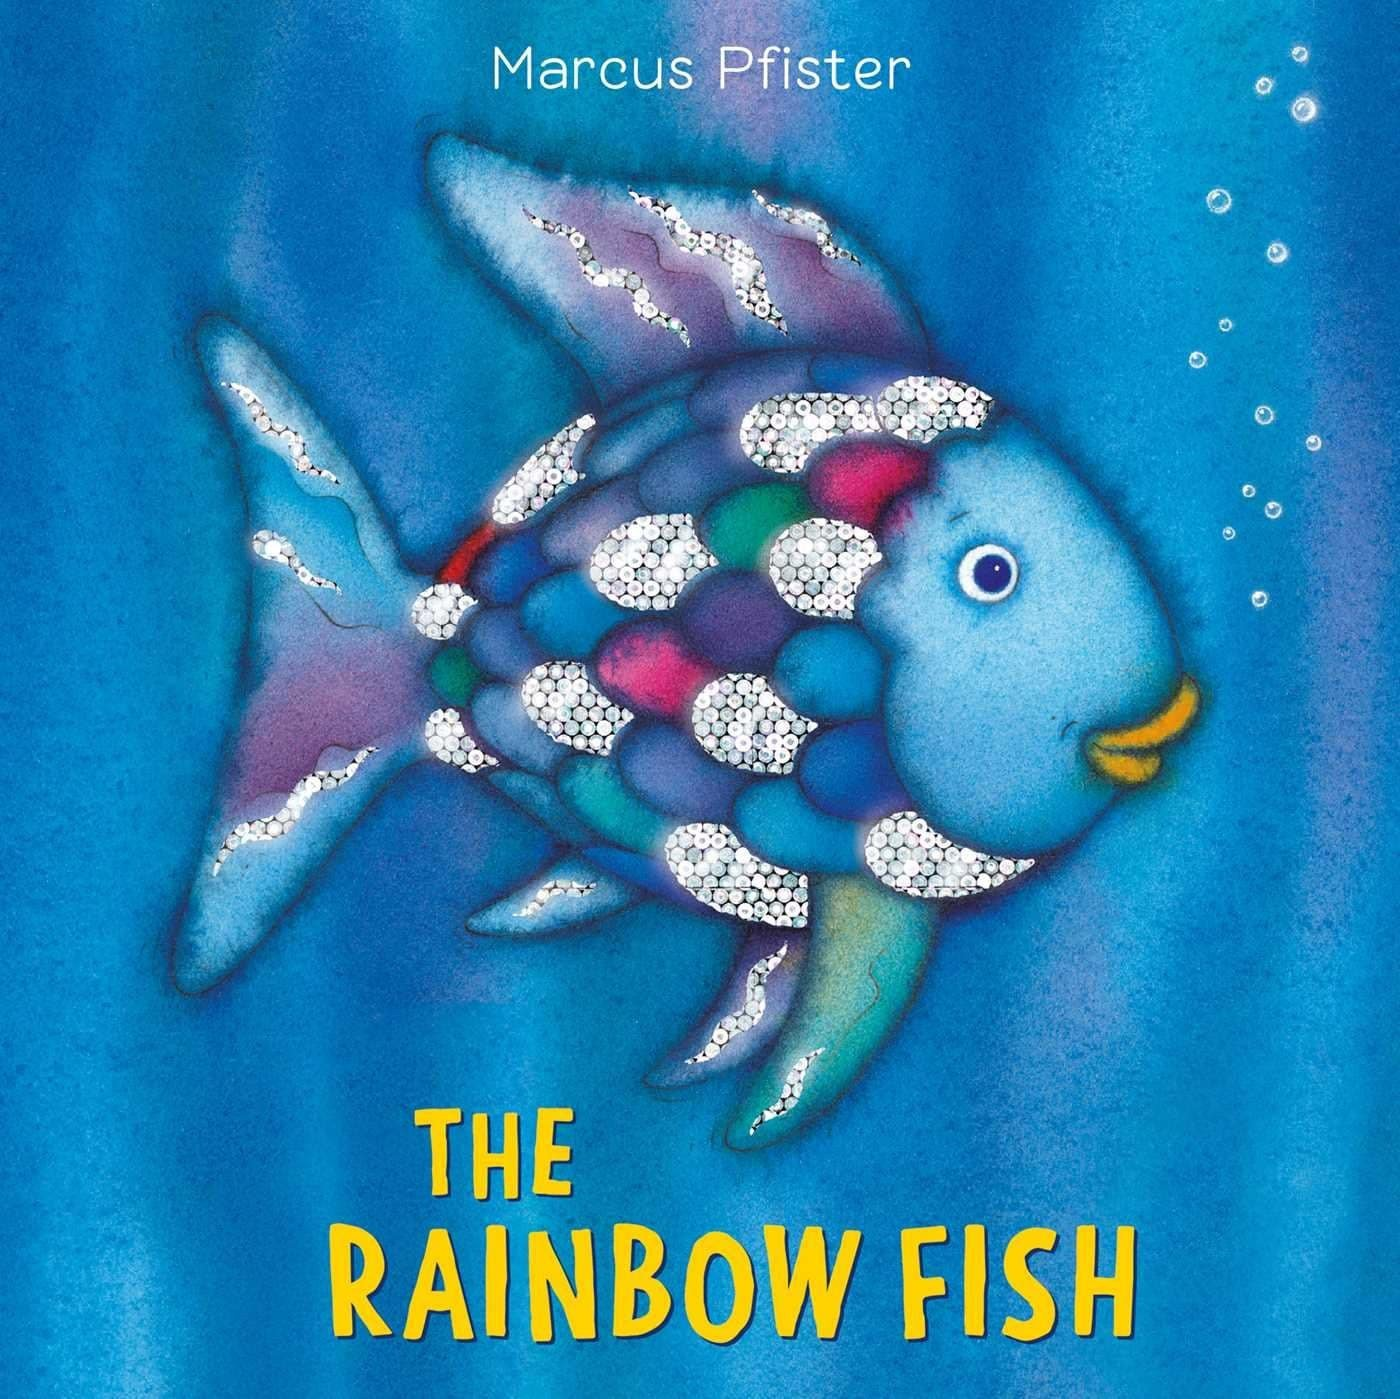 Rainbow Fish Worksheets the Rainbow Fish Fun Activities to Enjoy with Your